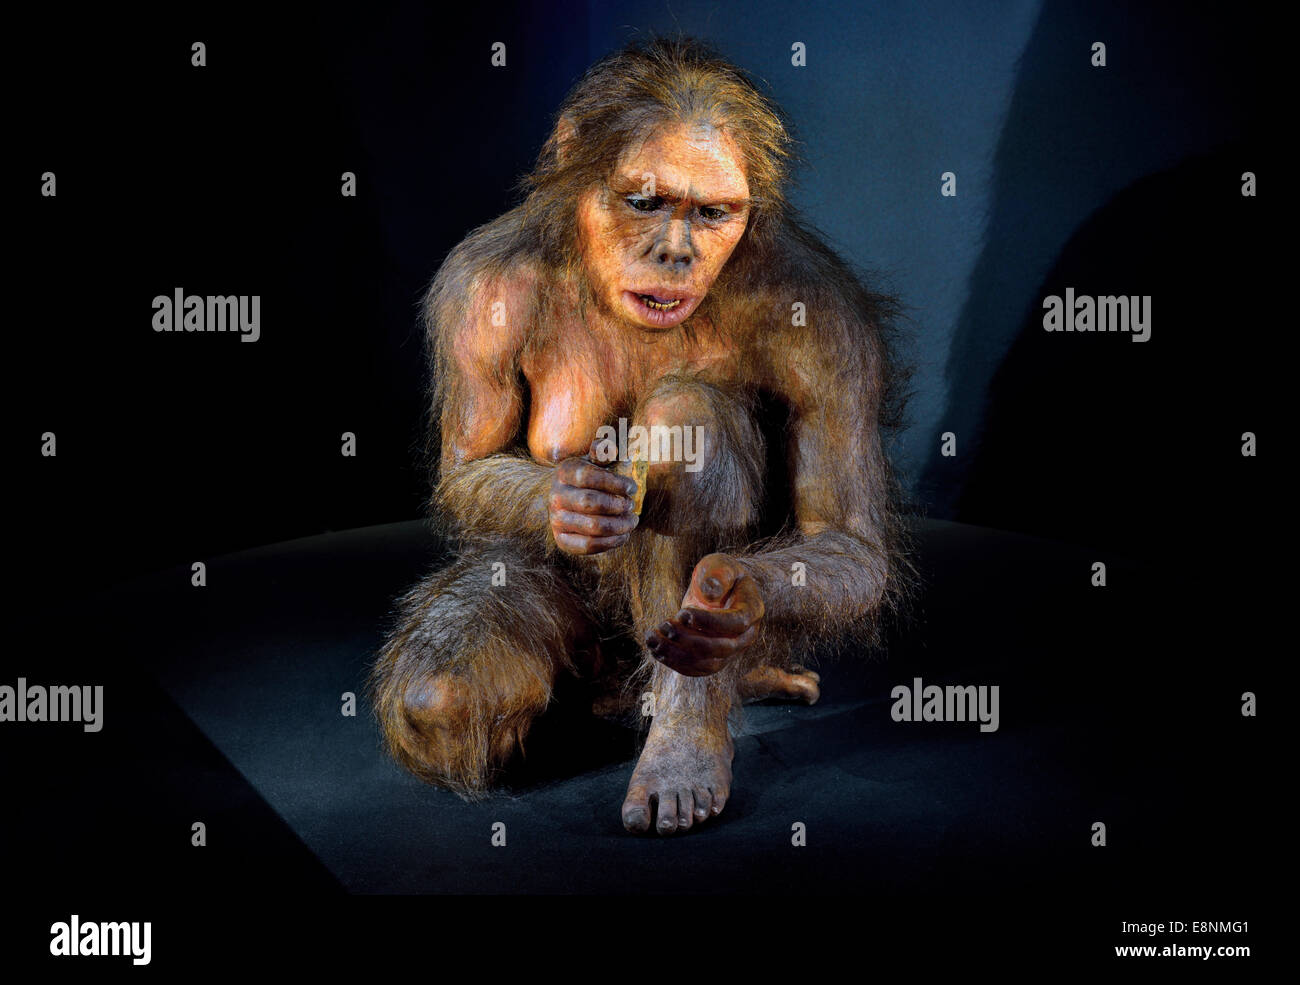 Spain, Burgos: Hominid 'Lucy' (Australopithecus afarensis) in the Museum of Human Evolution - Stock Image